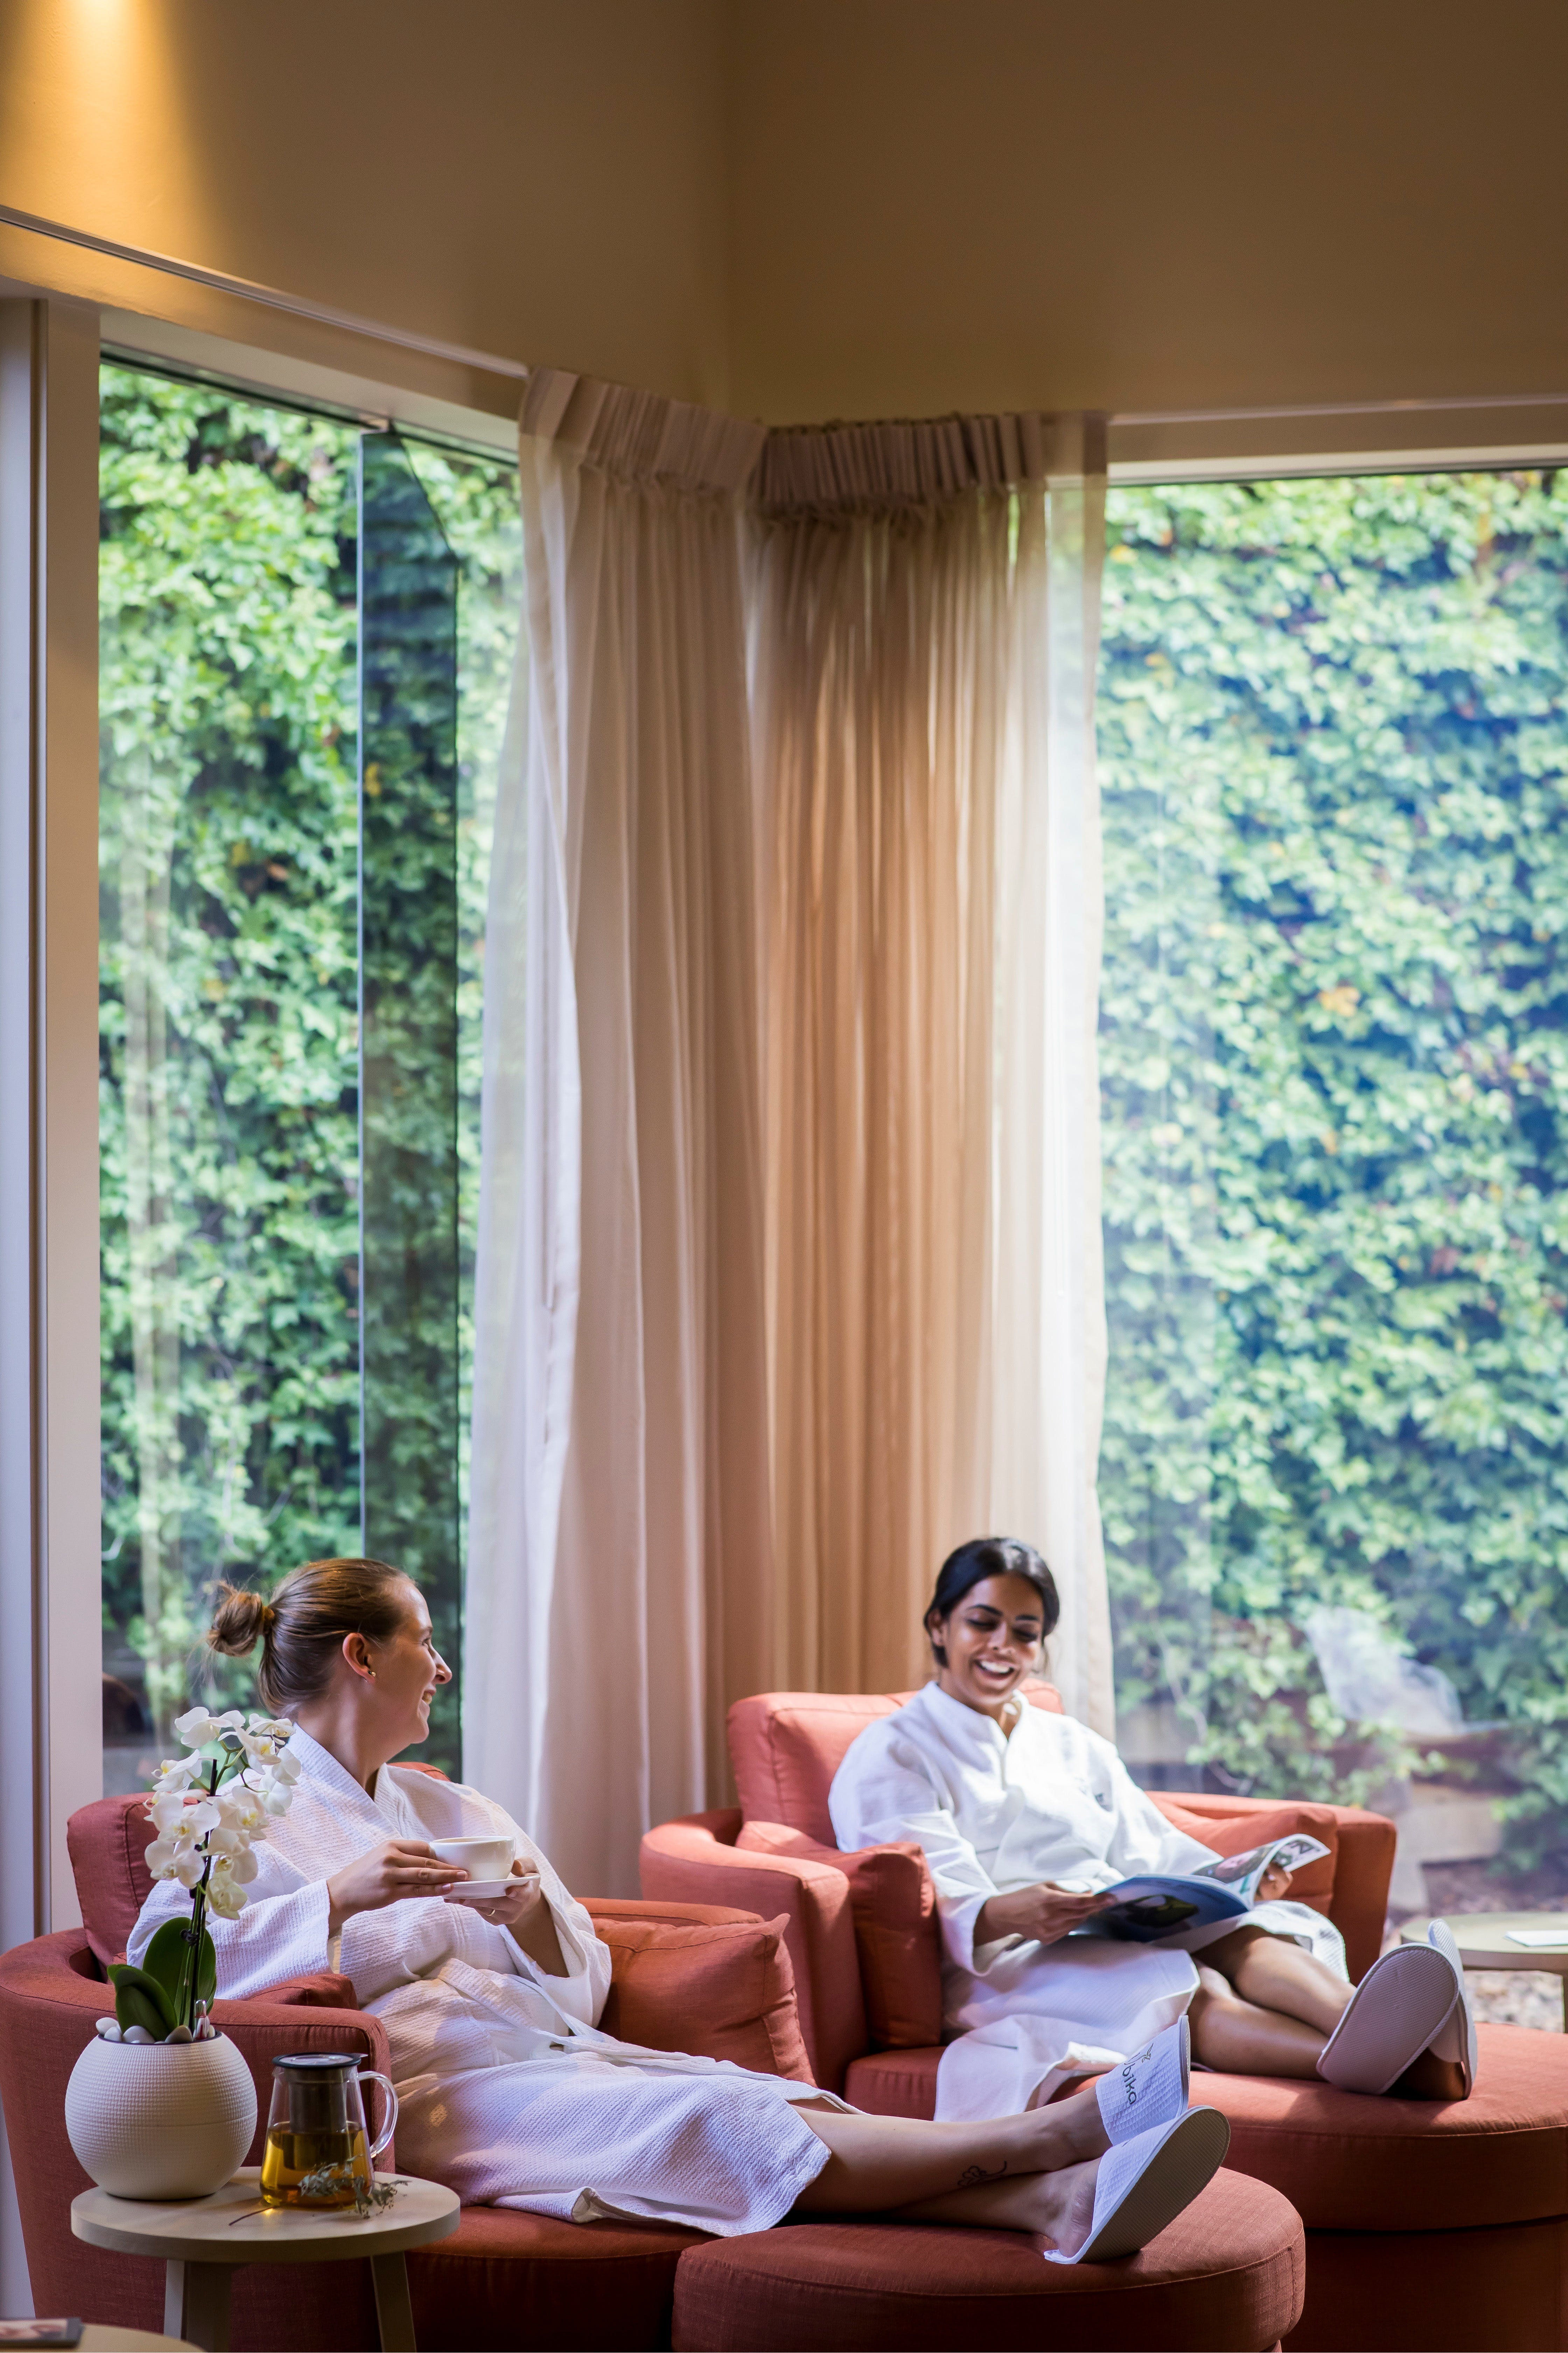 Ubika Day Spa Leura - Australia Accommodation